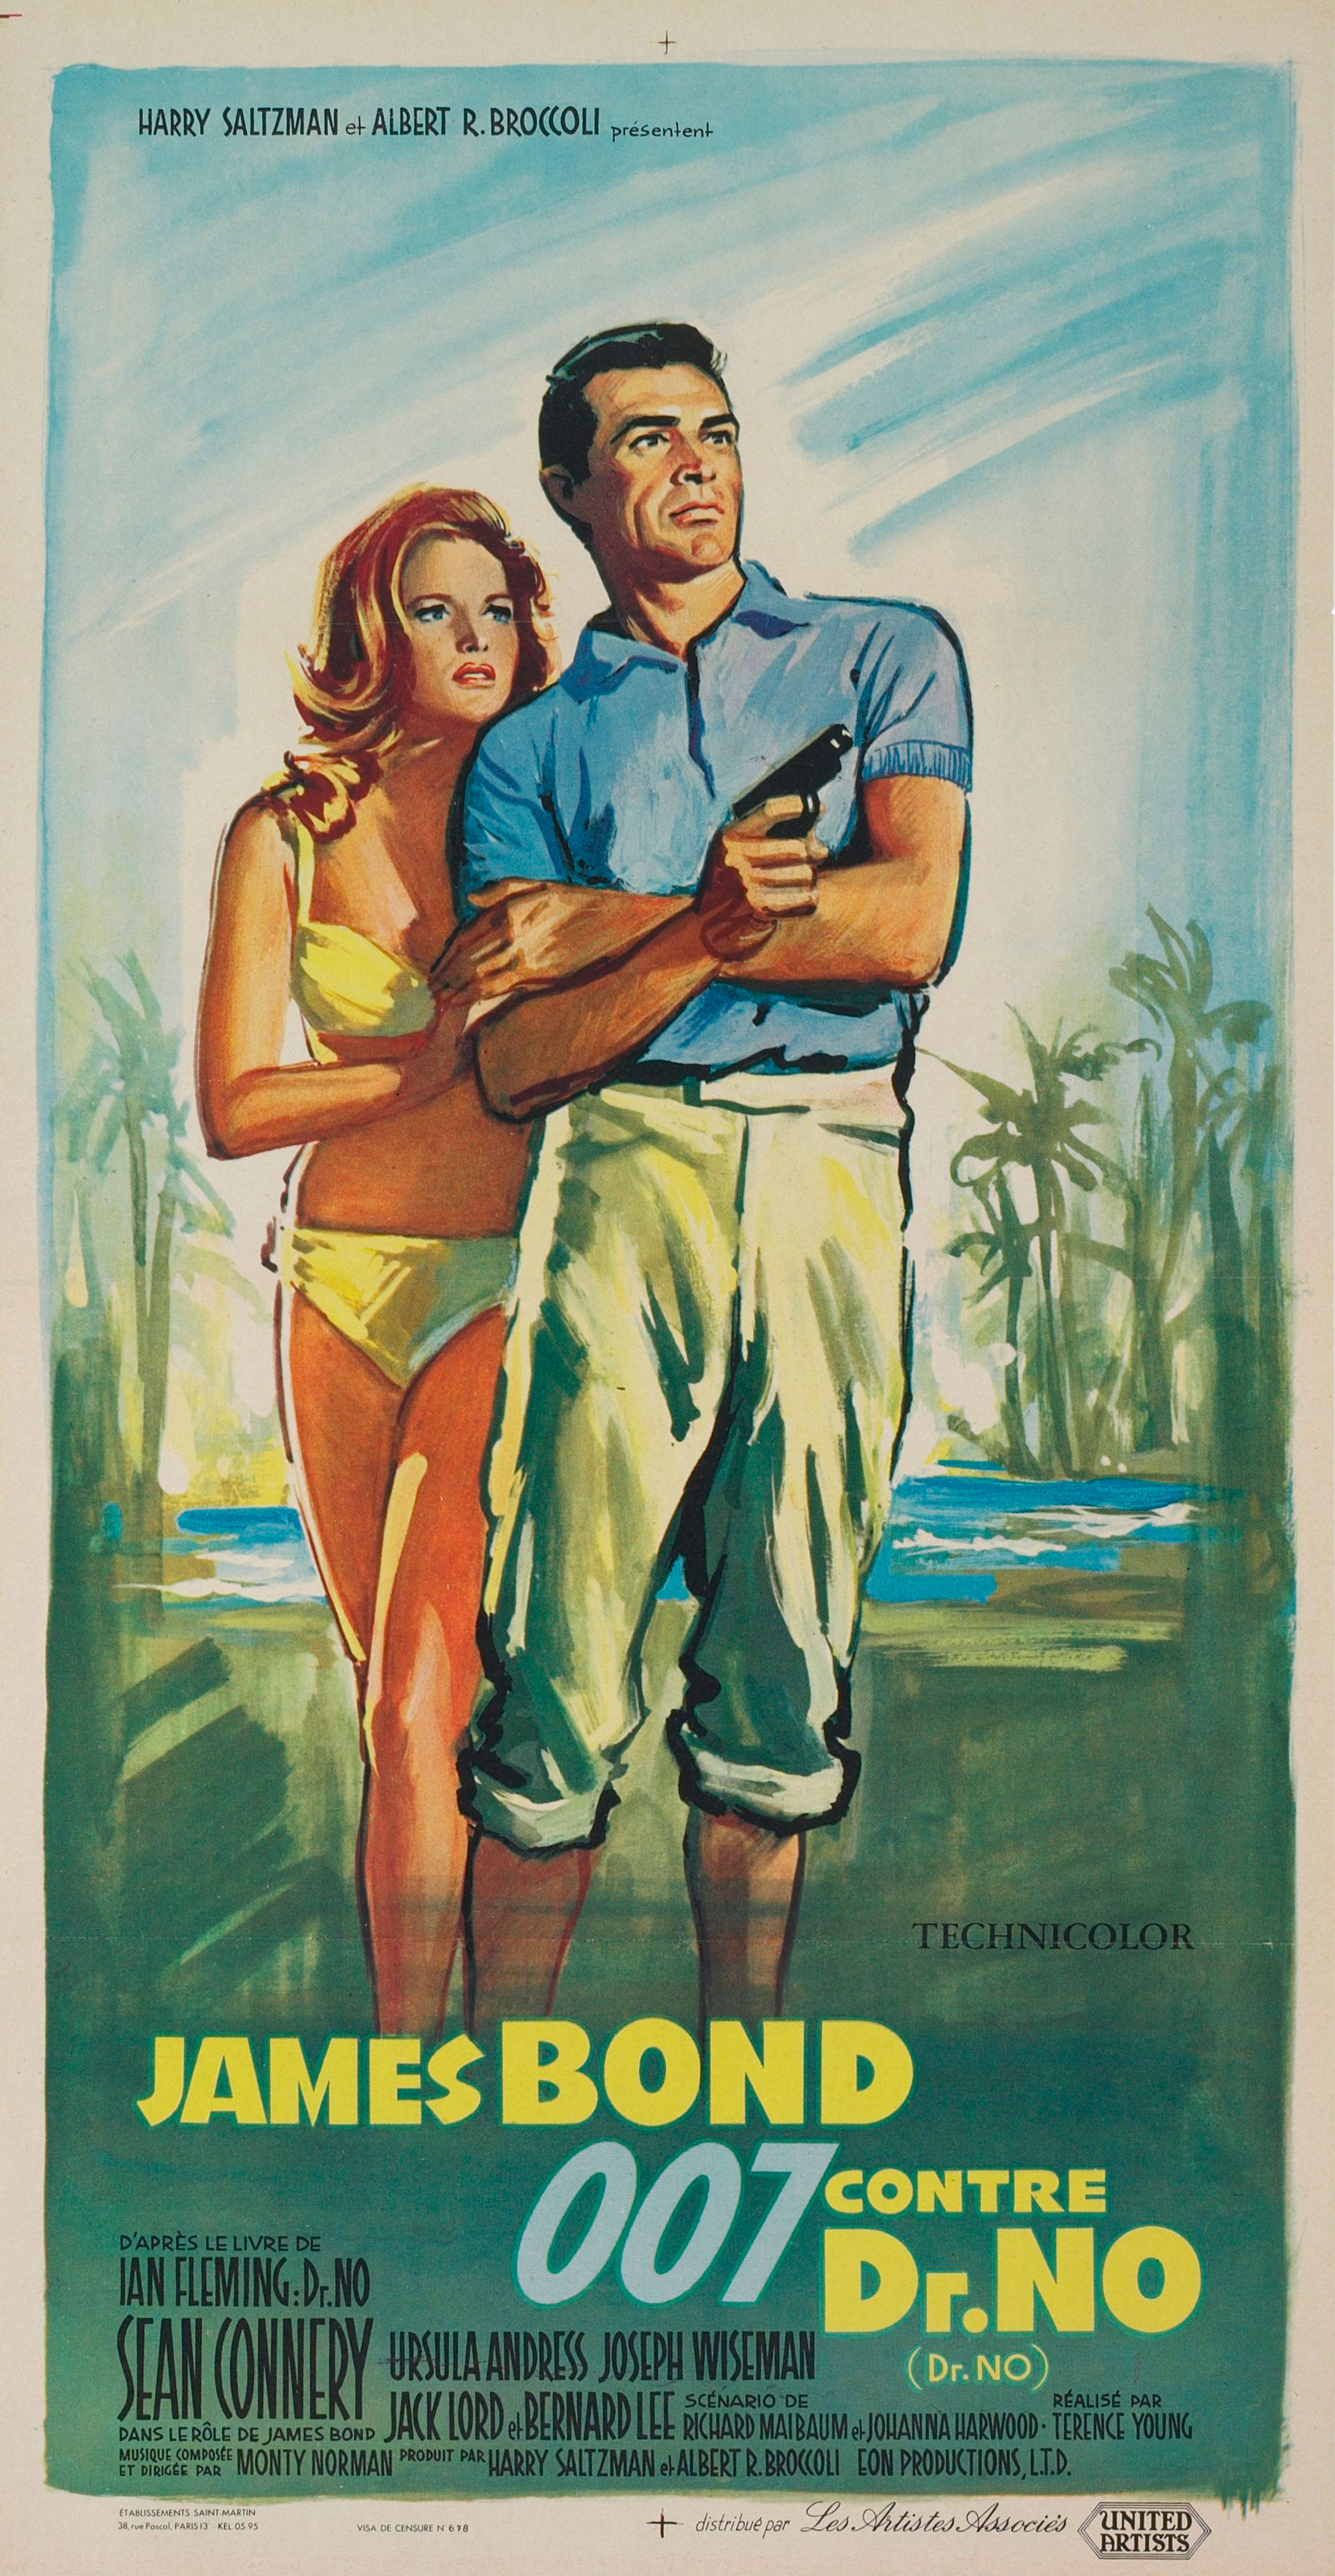 1963: Painted by renowned, Russian-born poster artist Boris Grinsson, this tropical fantasy conveys the tension of Bond and Honey's arrival on Crab Key -- Dr. No's Island. Grinsson worked from photographs and his distinctive, painterly style distinguished hundreds of posters for French, American and Italian films. Title translation: James Bond Versus Dr. No.